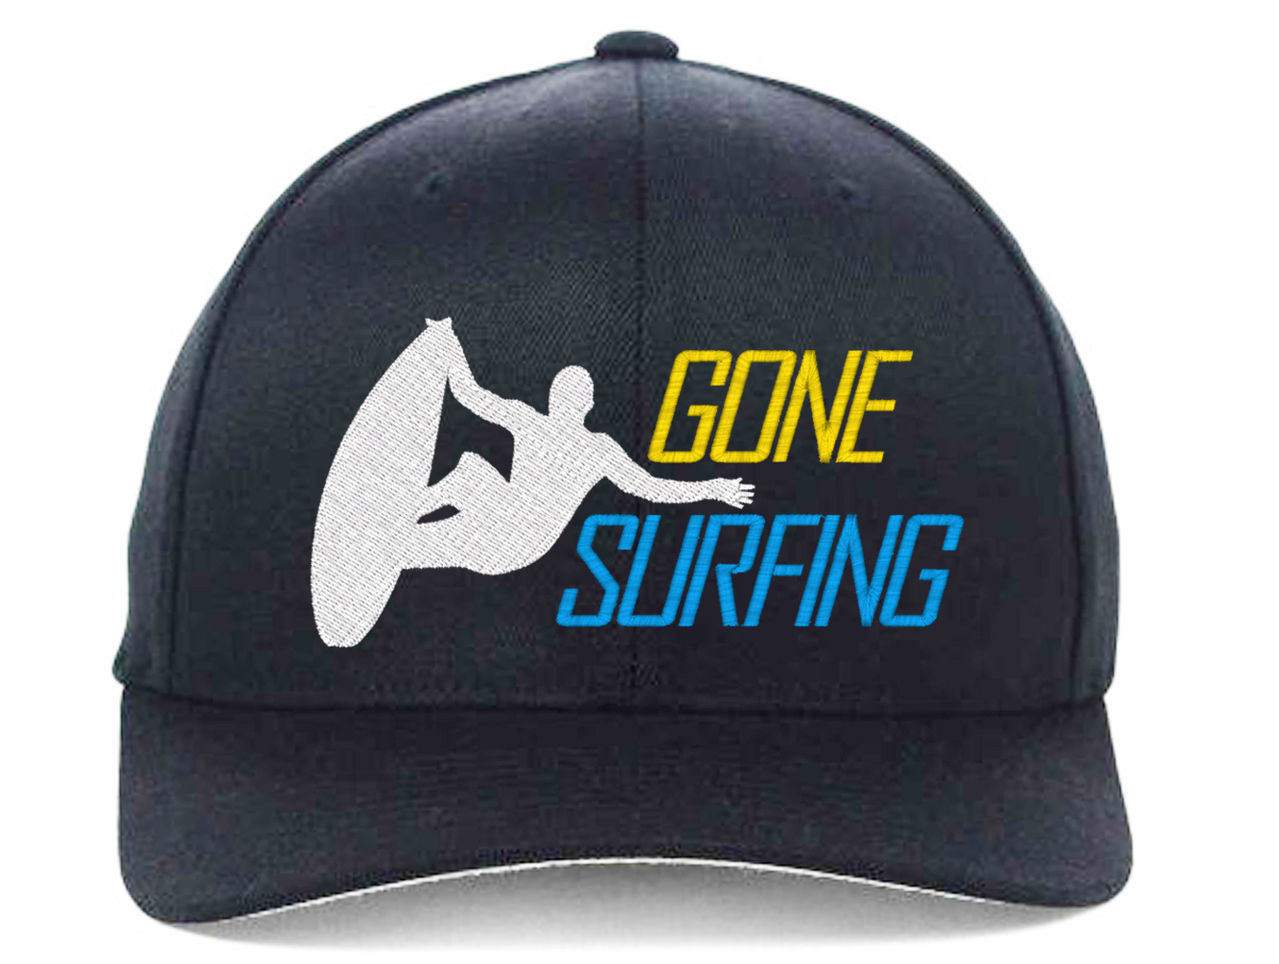 GONE Surfing, for best Surf Surfers Embroidered, Flexfit Hats